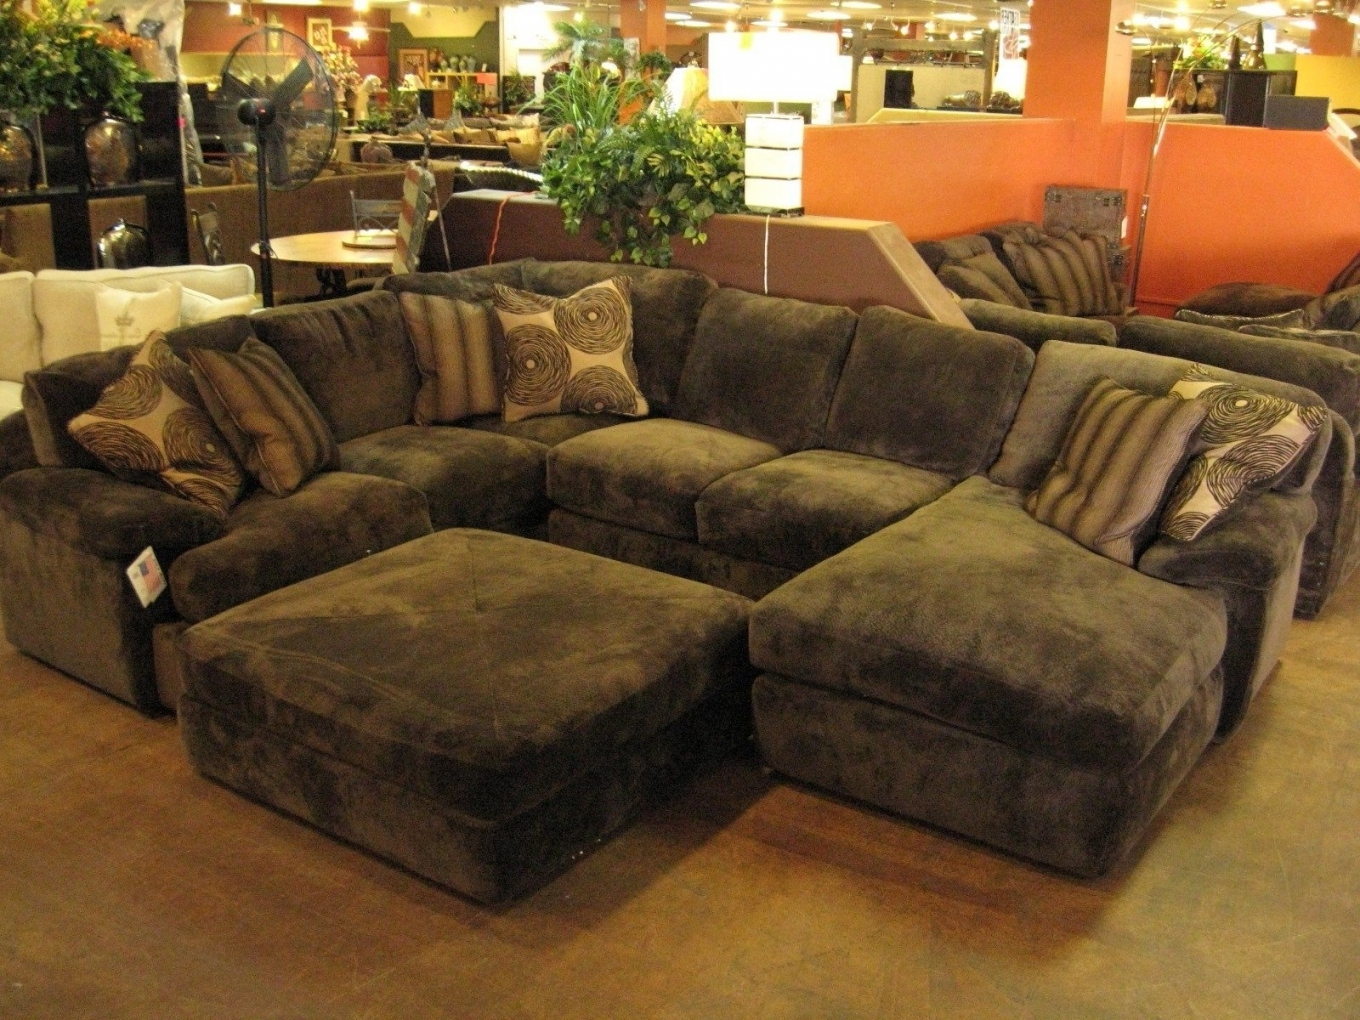 Famous Best Comfy Sectional Sofas 18 For Your Sofas And Couches Ideas Pertaining To Comfy Sectional Sofas (View 6 of 20)